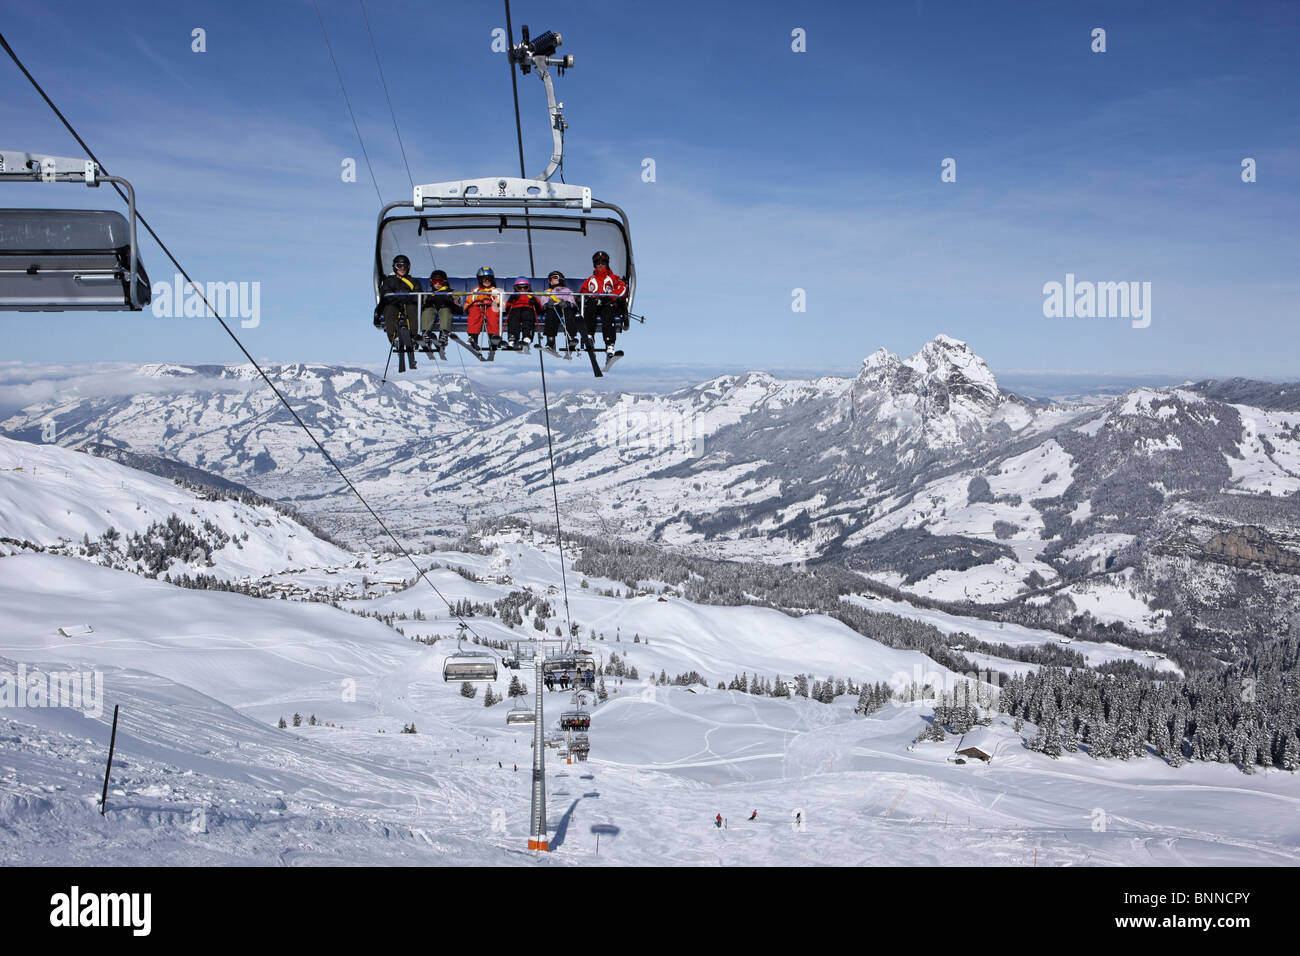 Switzerland swiss myths skiing area armchair elevator chair lift canton Schwyz snow winter ski skiing Carving Carvingski - Stock Image